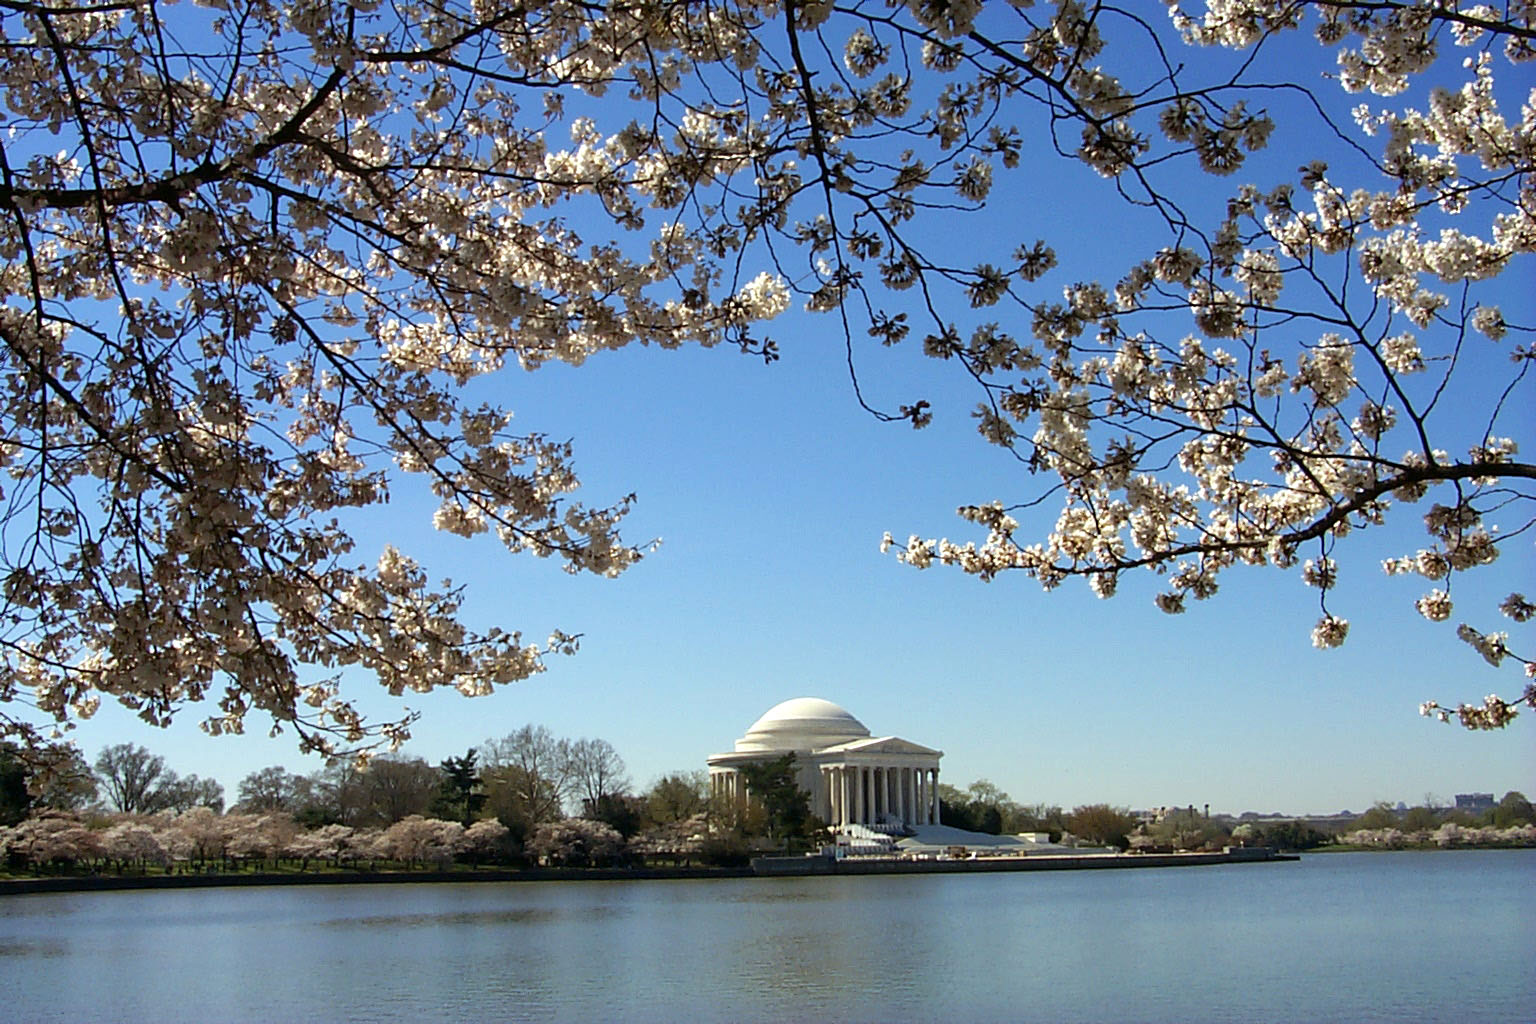 Jefferson Memorial cherry blossoms Patrick Fitzgerald